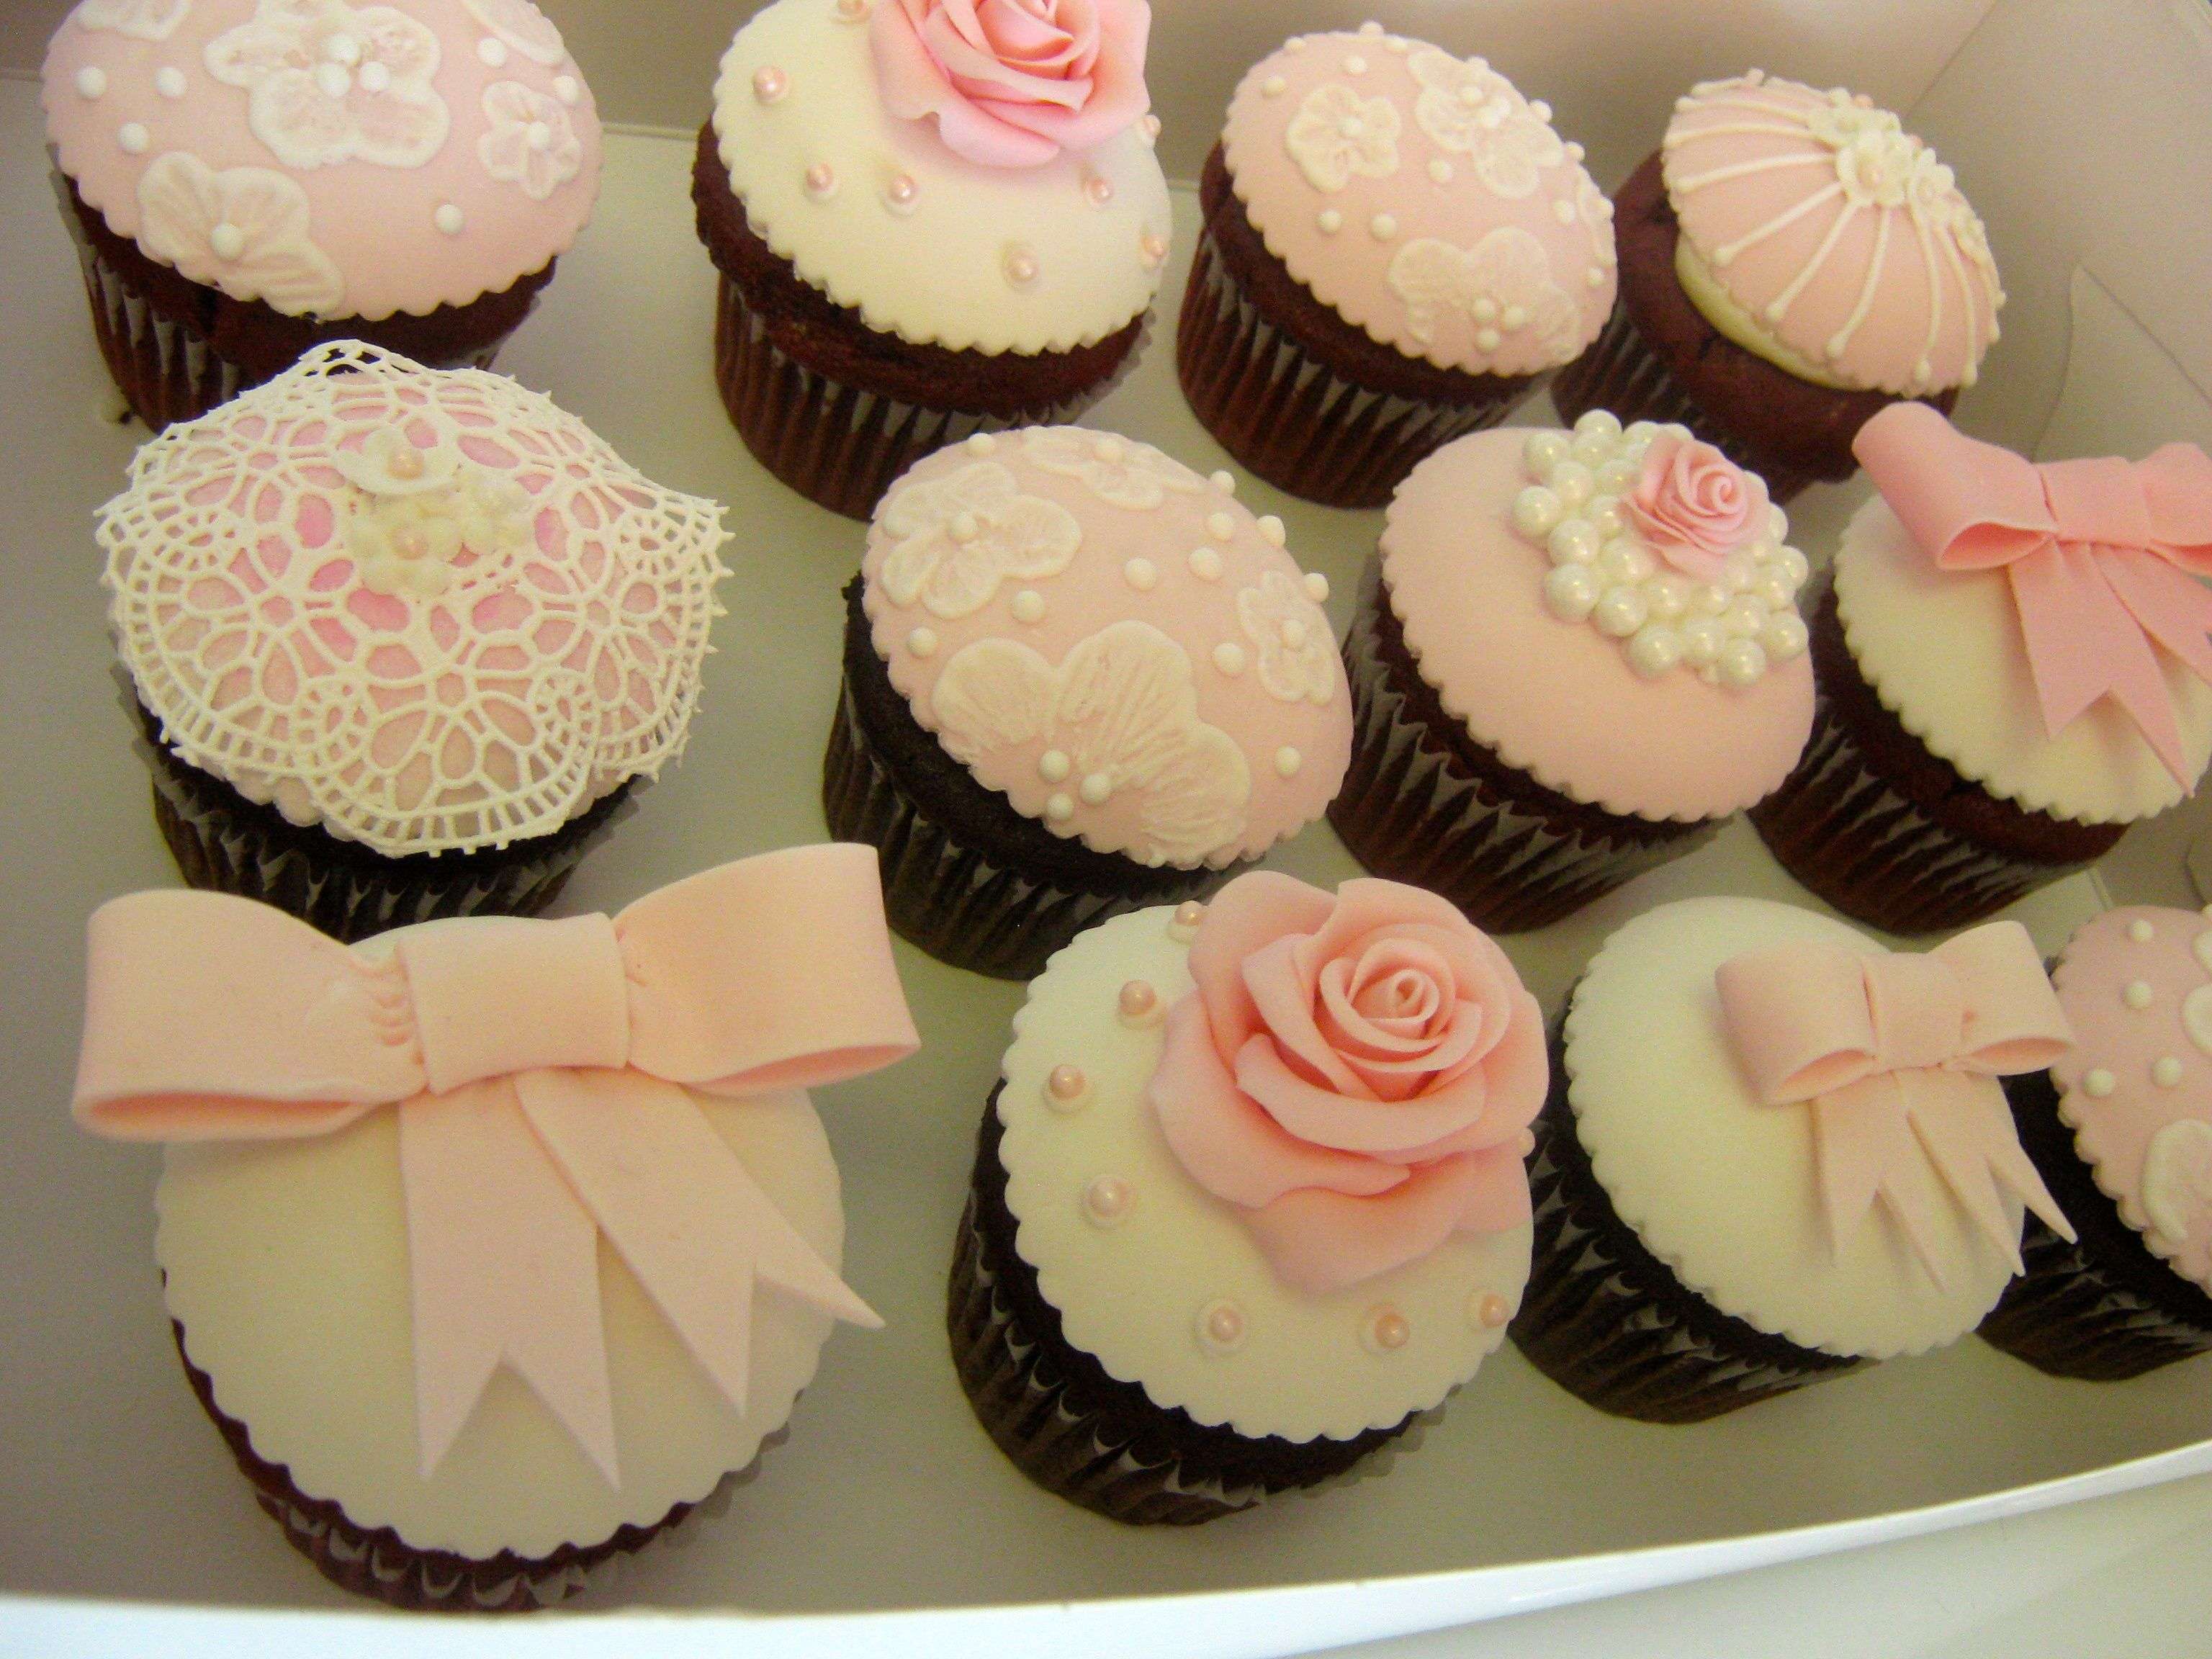 50+ Baby shower cake toppers edible ideas